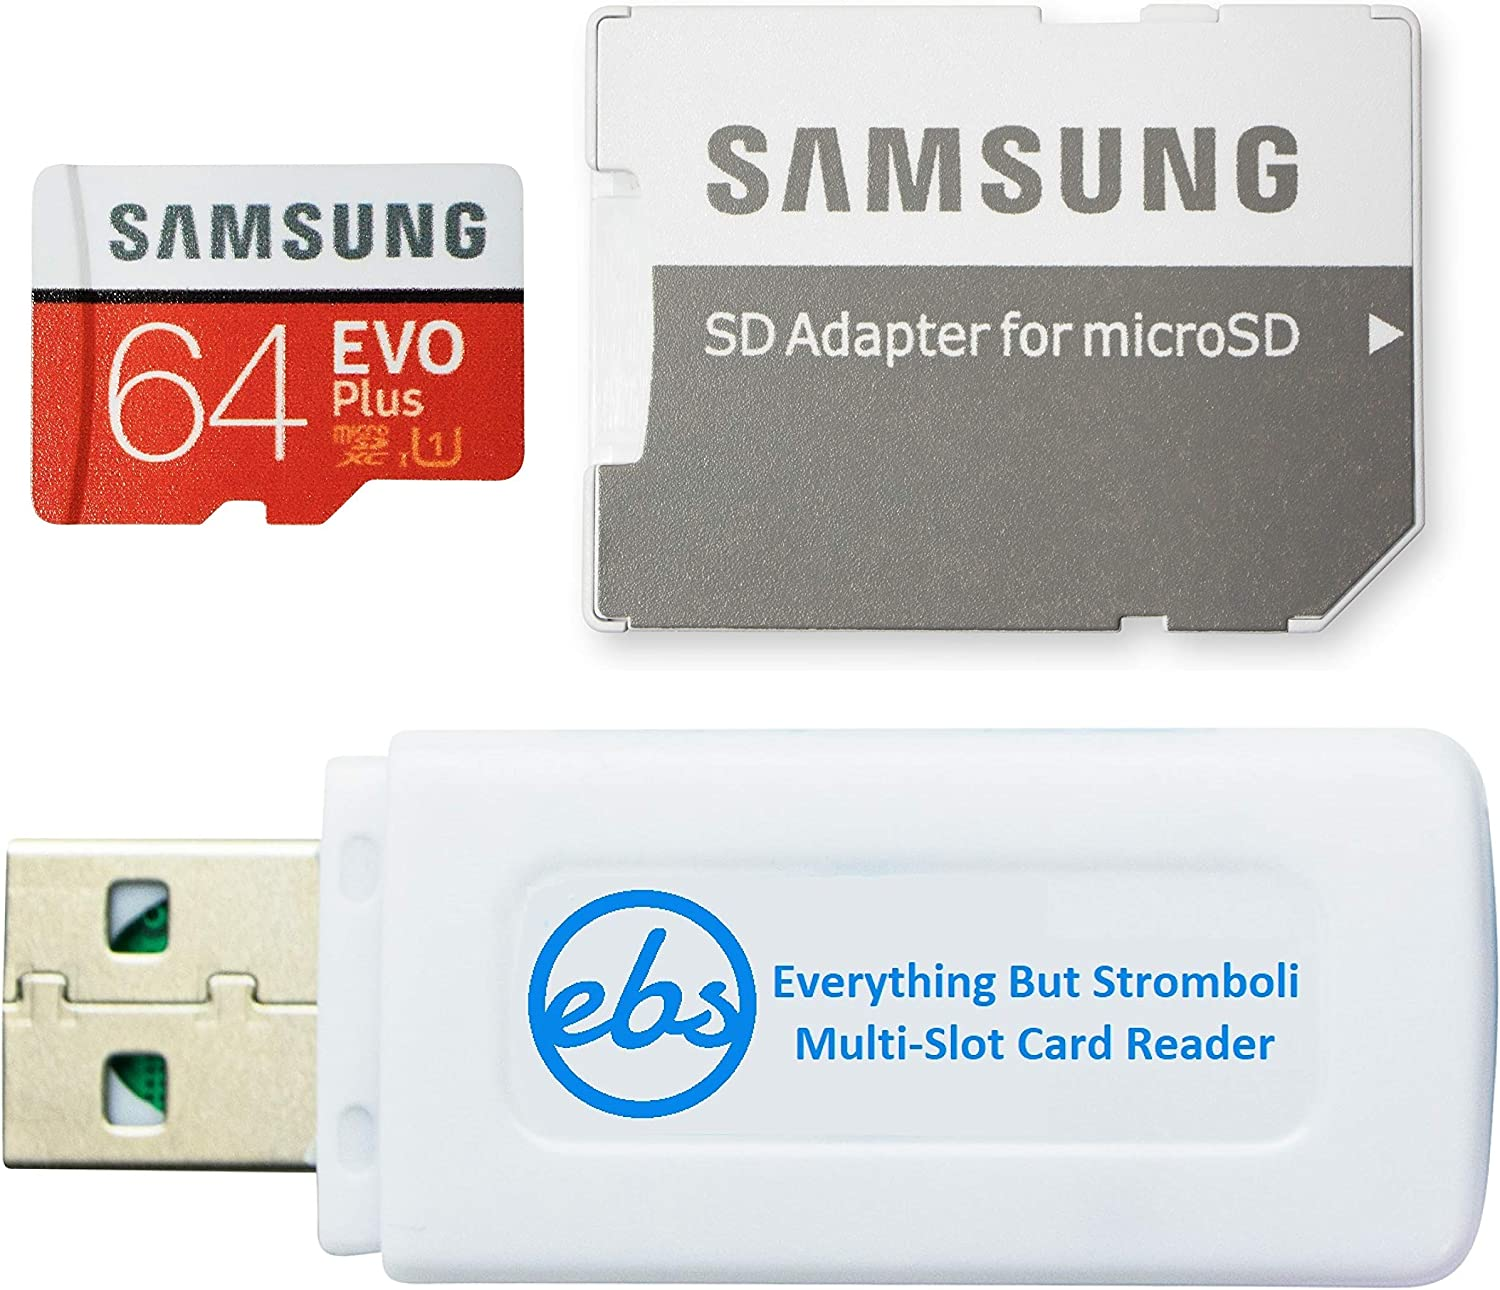 Samsung Evo Plus 64GB Micro SDXC Memory Card Class 10 (MB-MC64) Works with Android Galaxy Cell Phones A10e, A10s, A30s, A50s, A90 5G Bundle with (1) Everything But Stromboli MicroSD & SD Card Reader